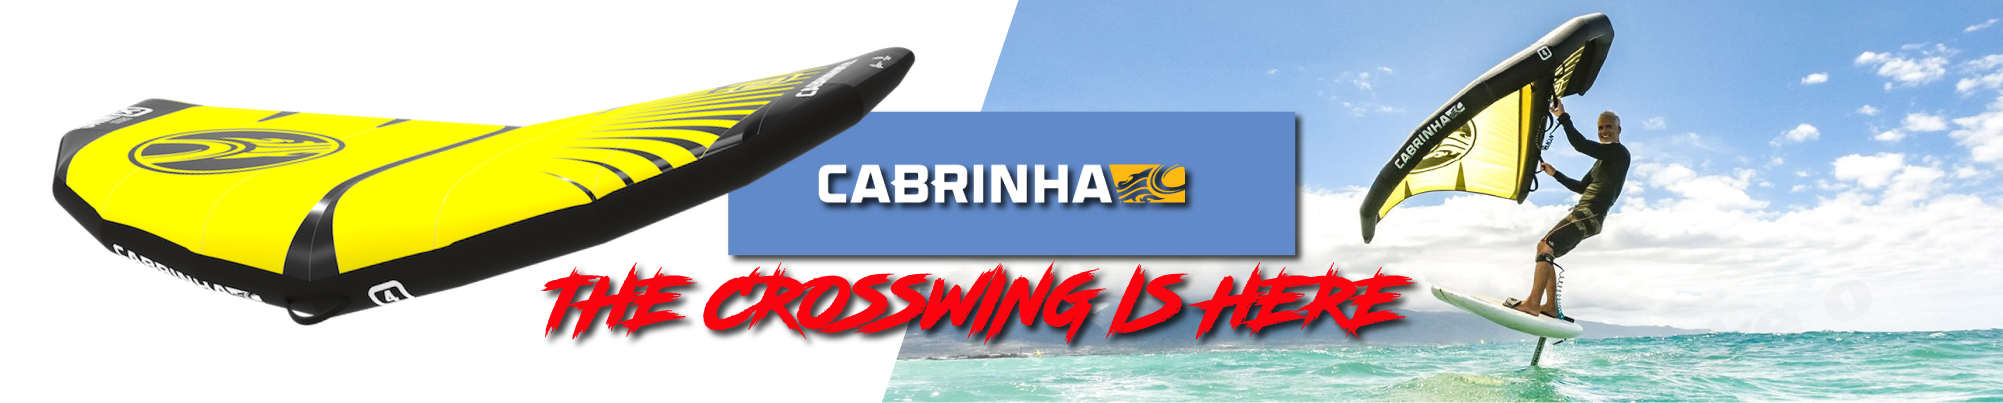 Cabrinha Crosswing Kites and Wind Wings - Crosswing In Stock - Wake2o